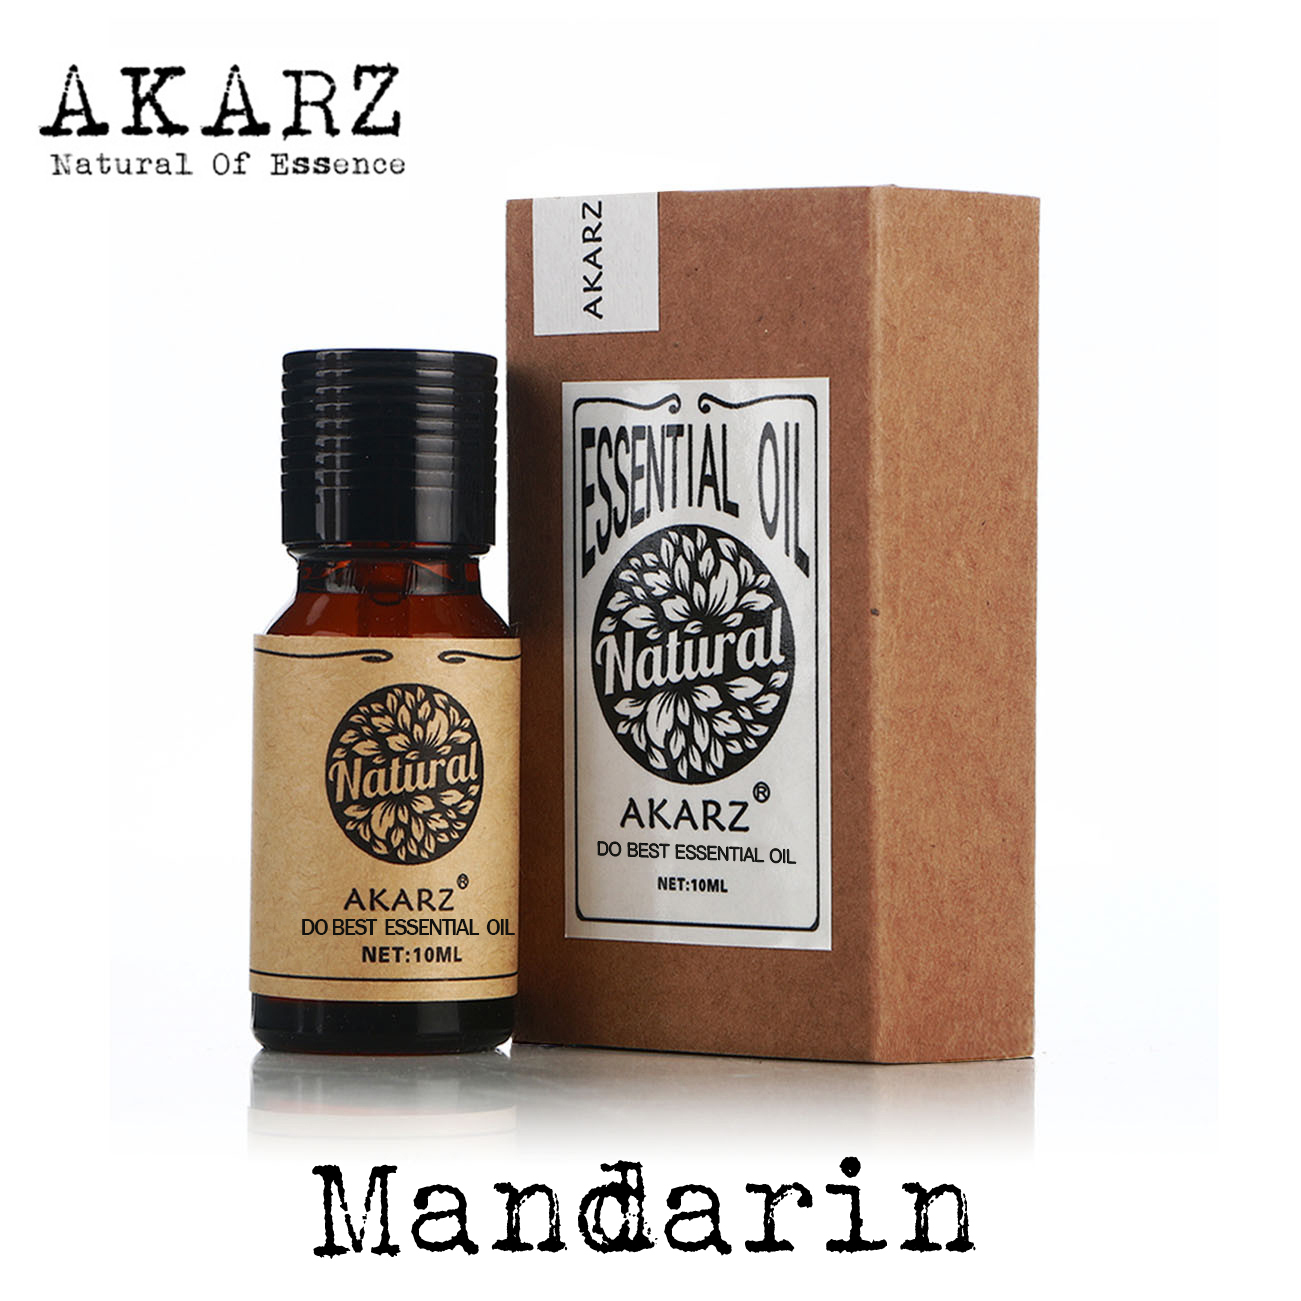 AKARZ Famous brand natural aromatherapy Mandarin essential oil Eliminate anxiety Skin lubrication Eliminate anxiety Mandarin oil overcoming math anxiety rev